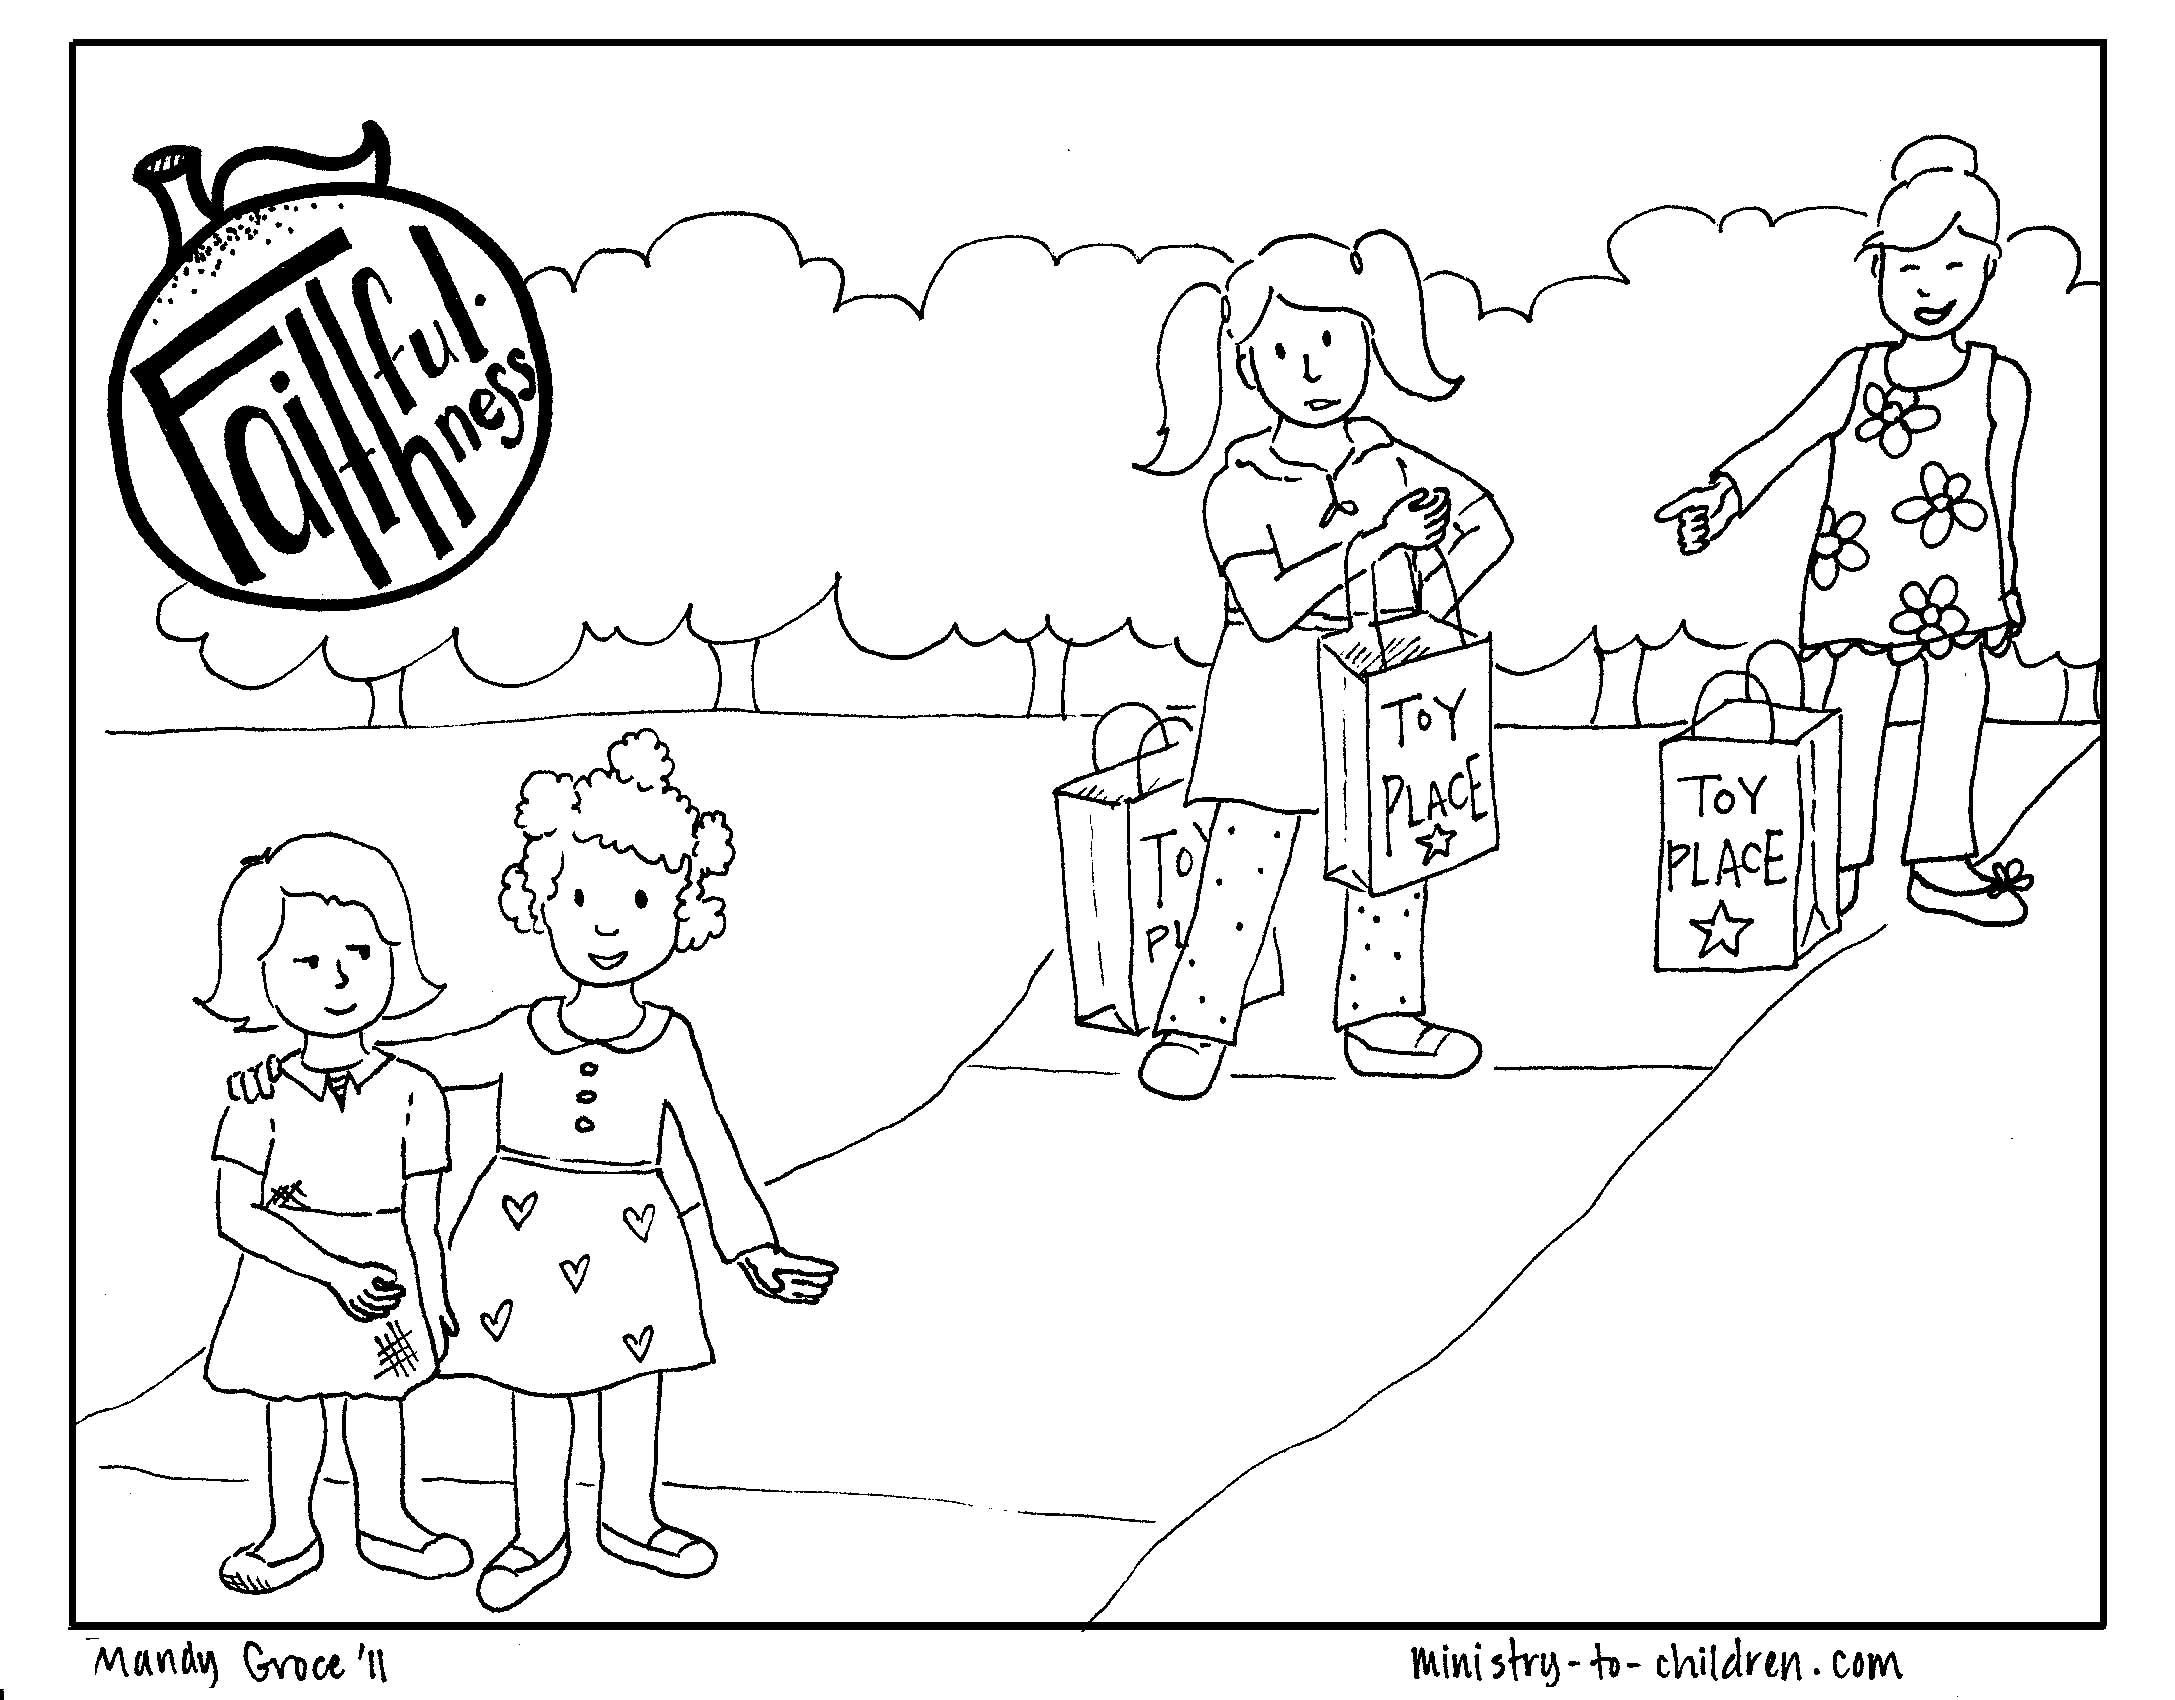 Faithfulness fruit of the spirit coloring page